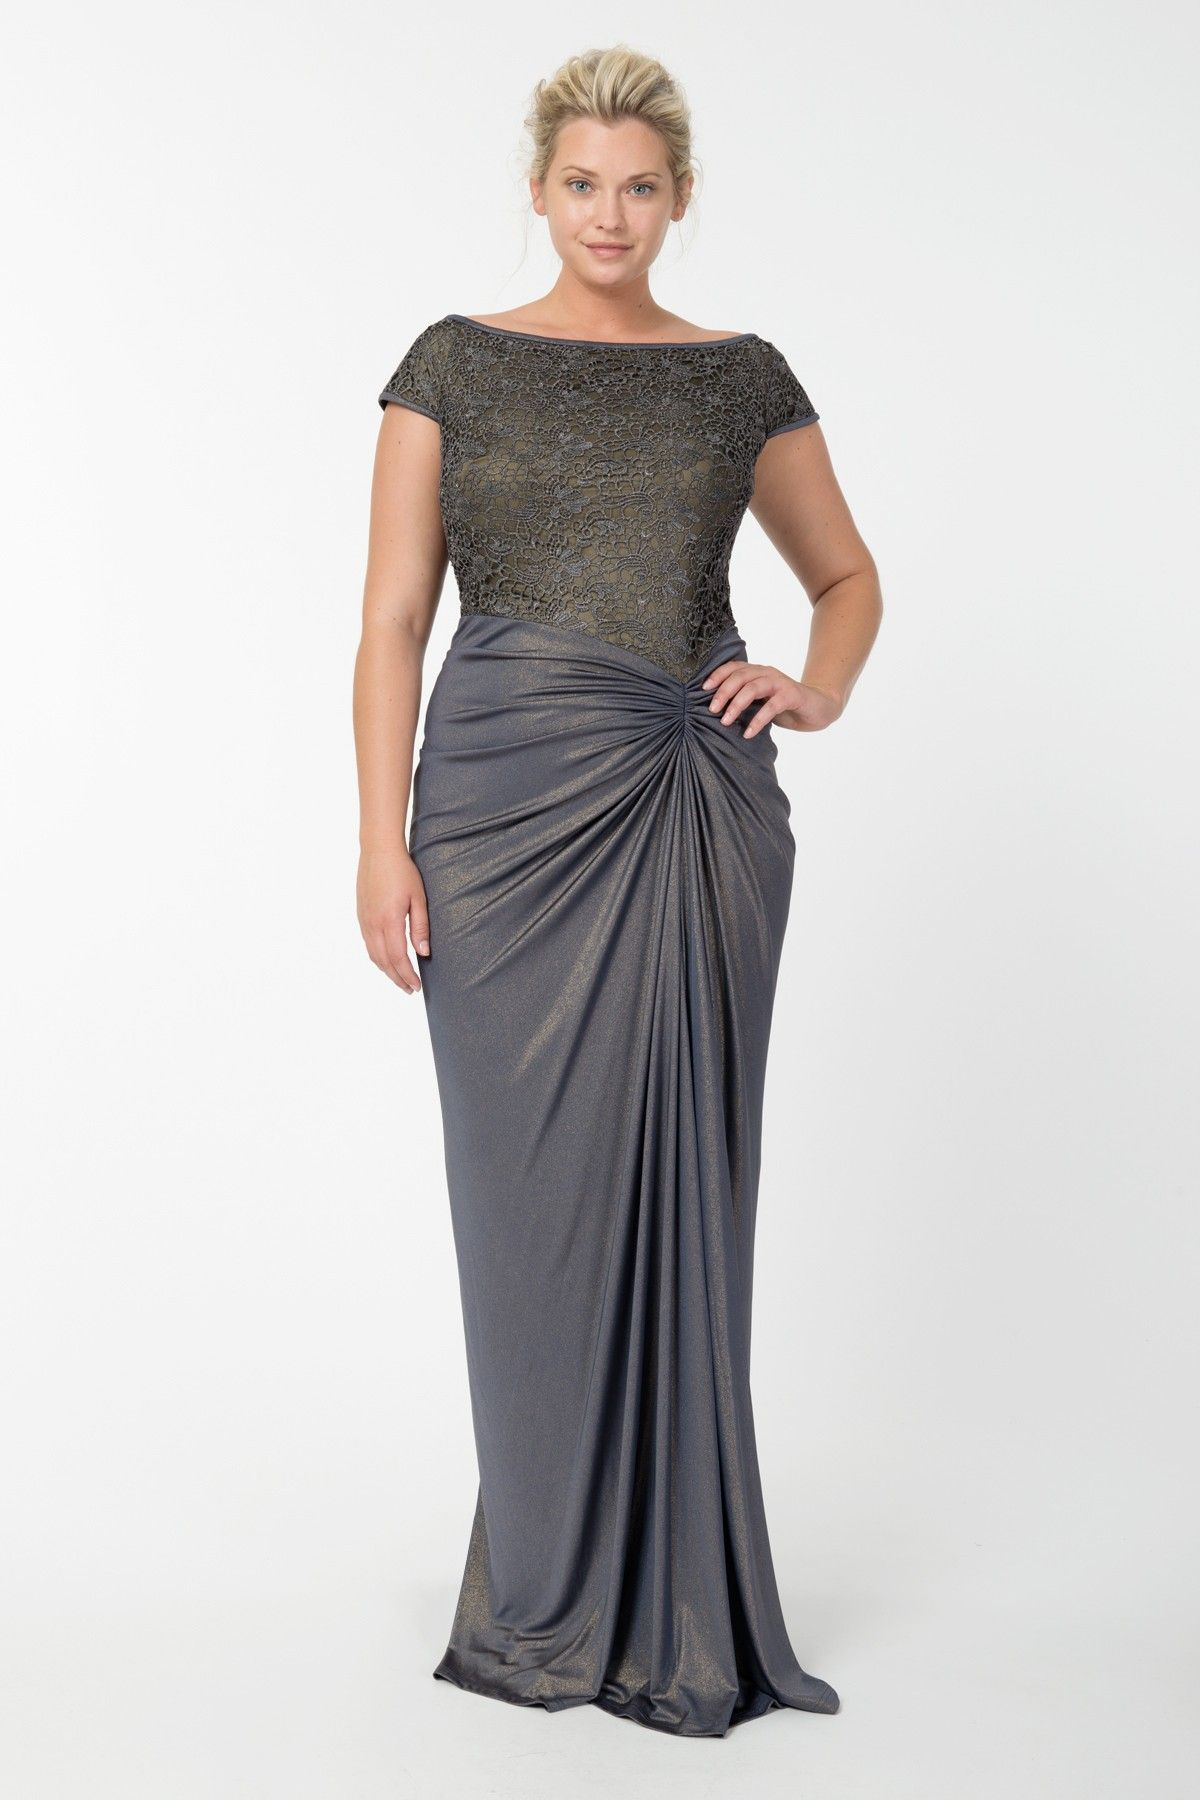 e68a4d61bb 20 Plus Size Evening Dresses to Look Like Queen